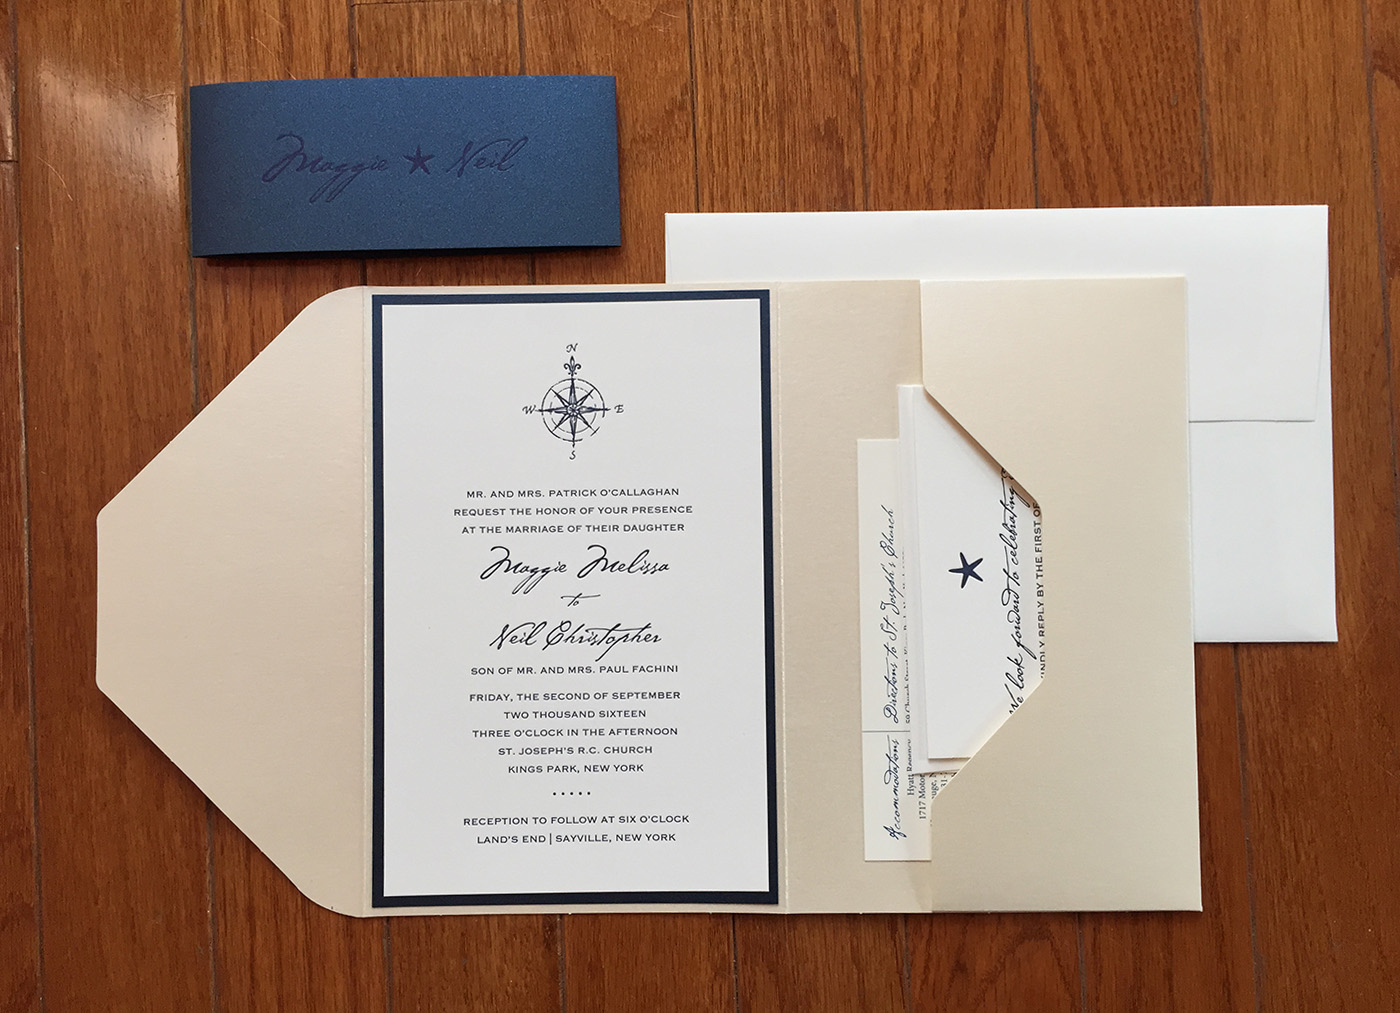 Maggie + Neil | Pocket Invitation with Bellyband